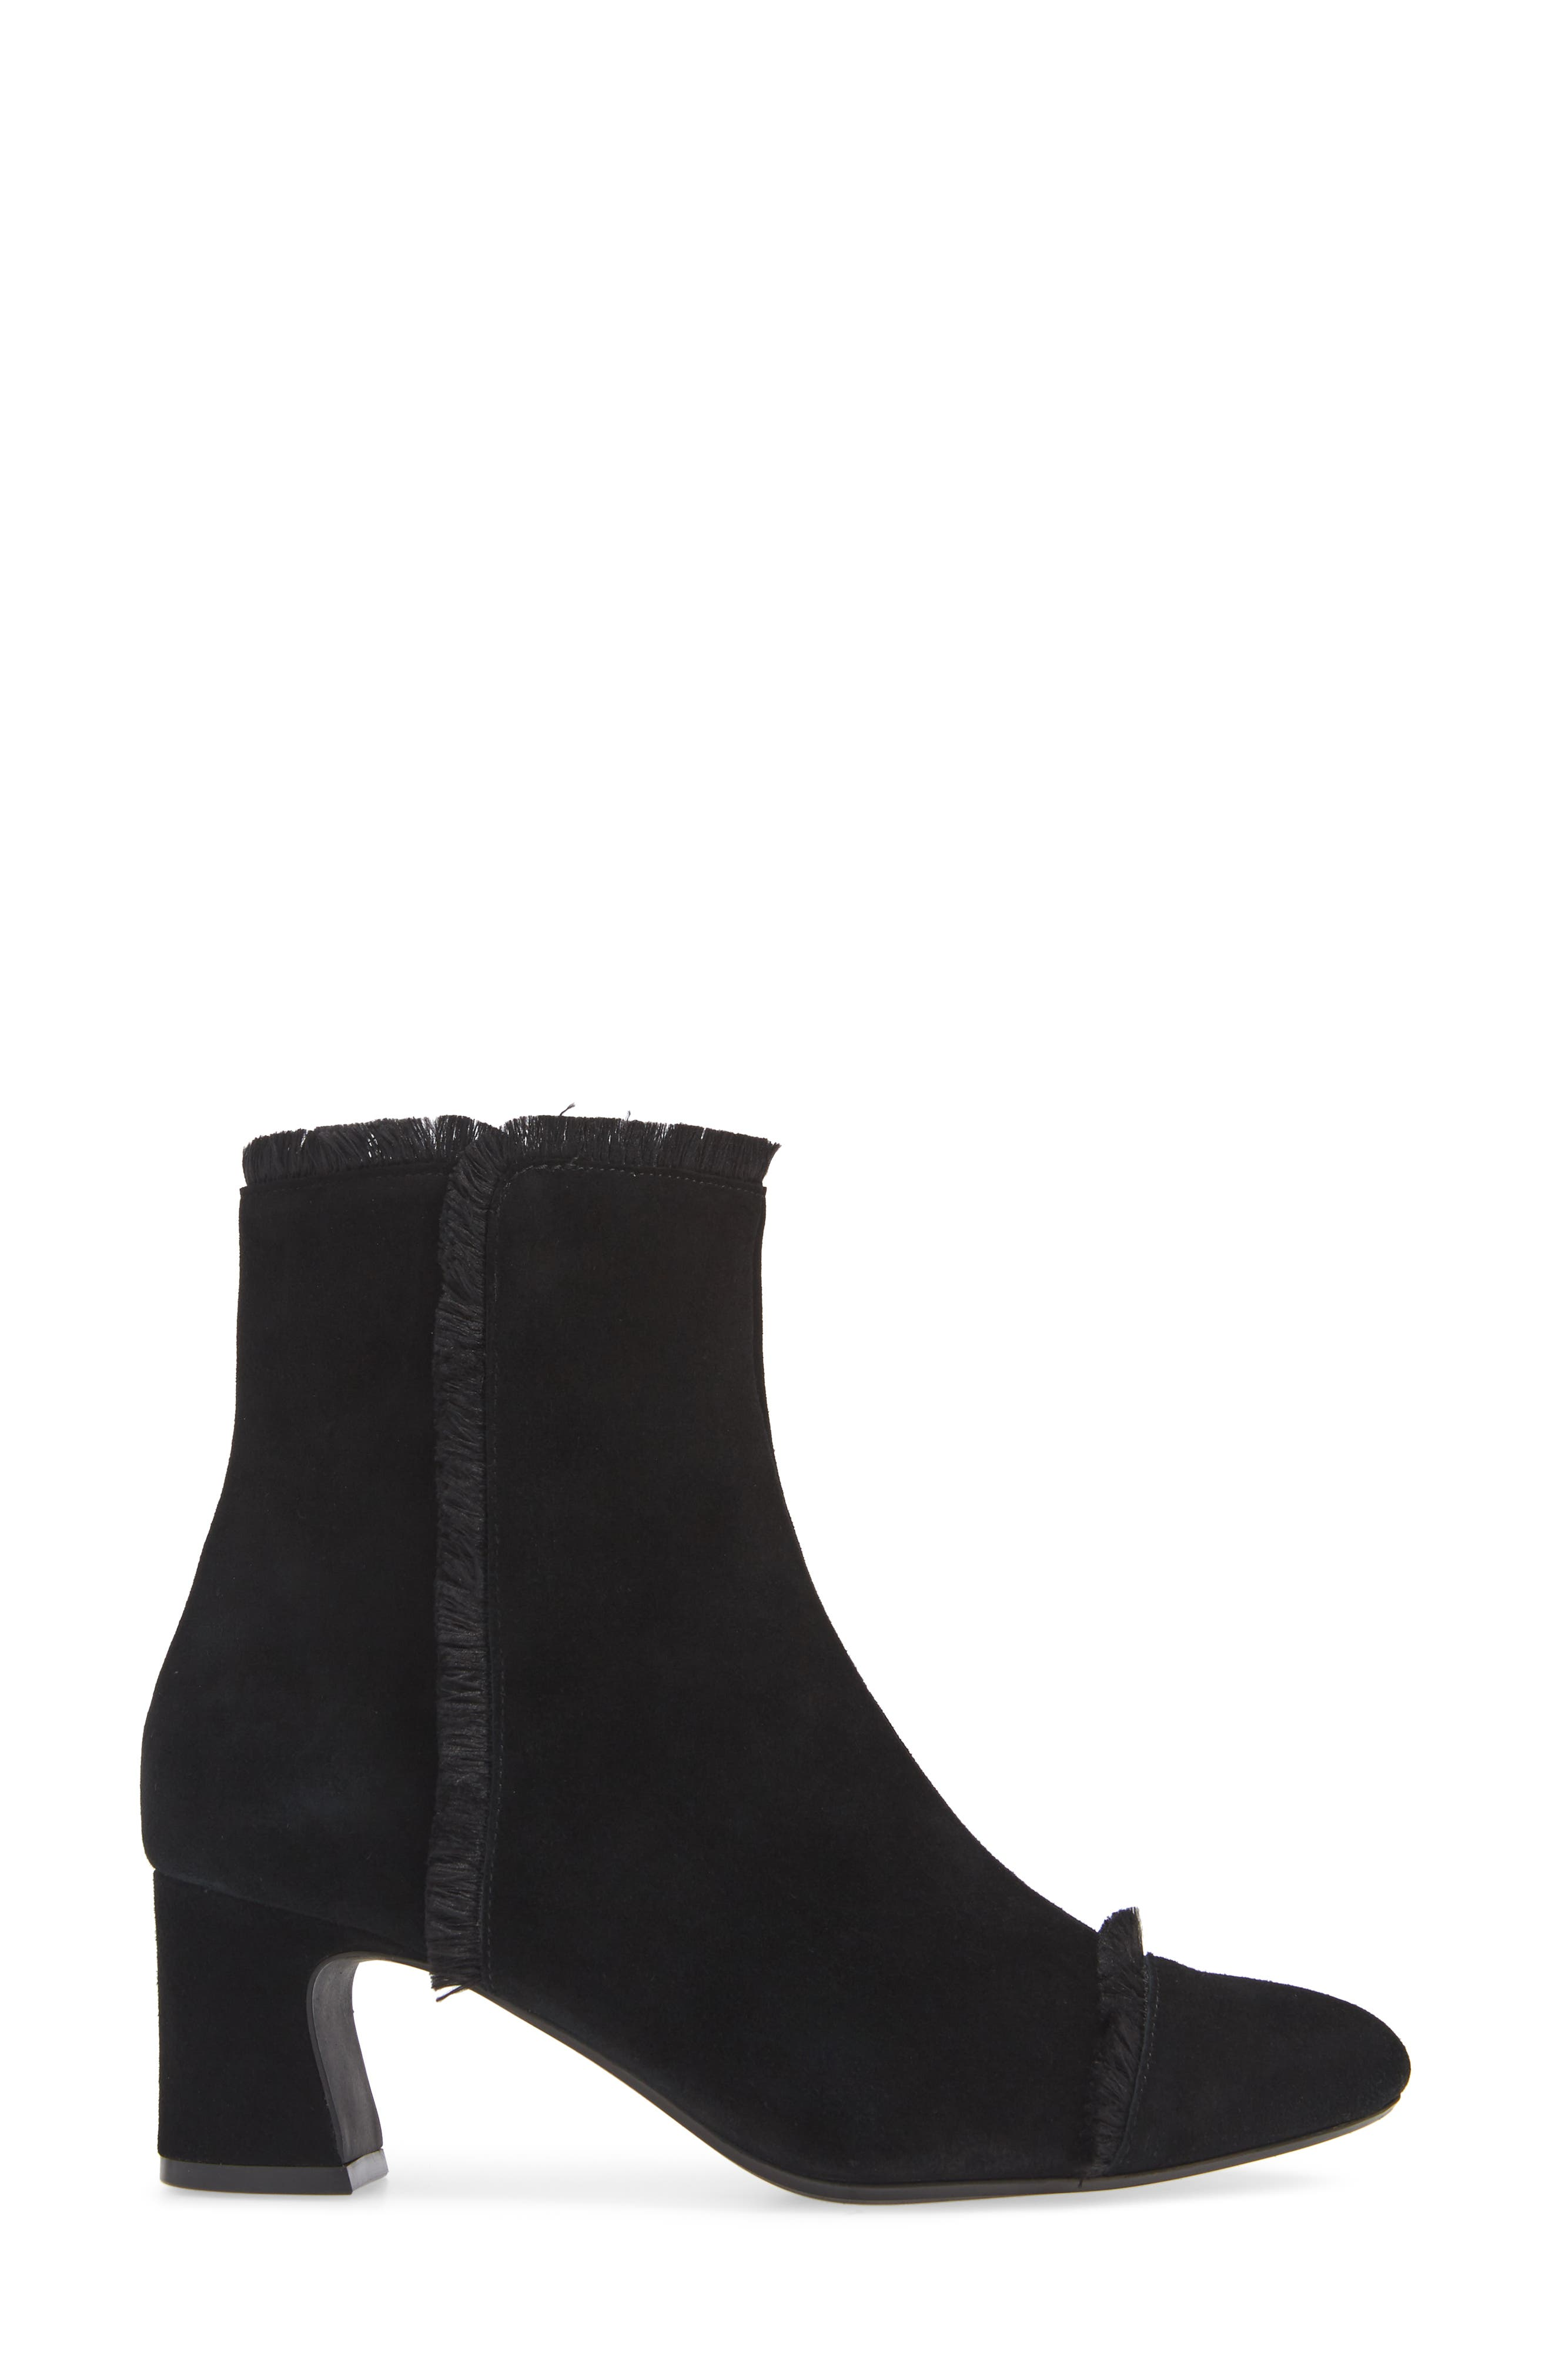 Danzing Fringe Bootie,                             Alternate thumbnail 3, color,                             BLACK SUEDE